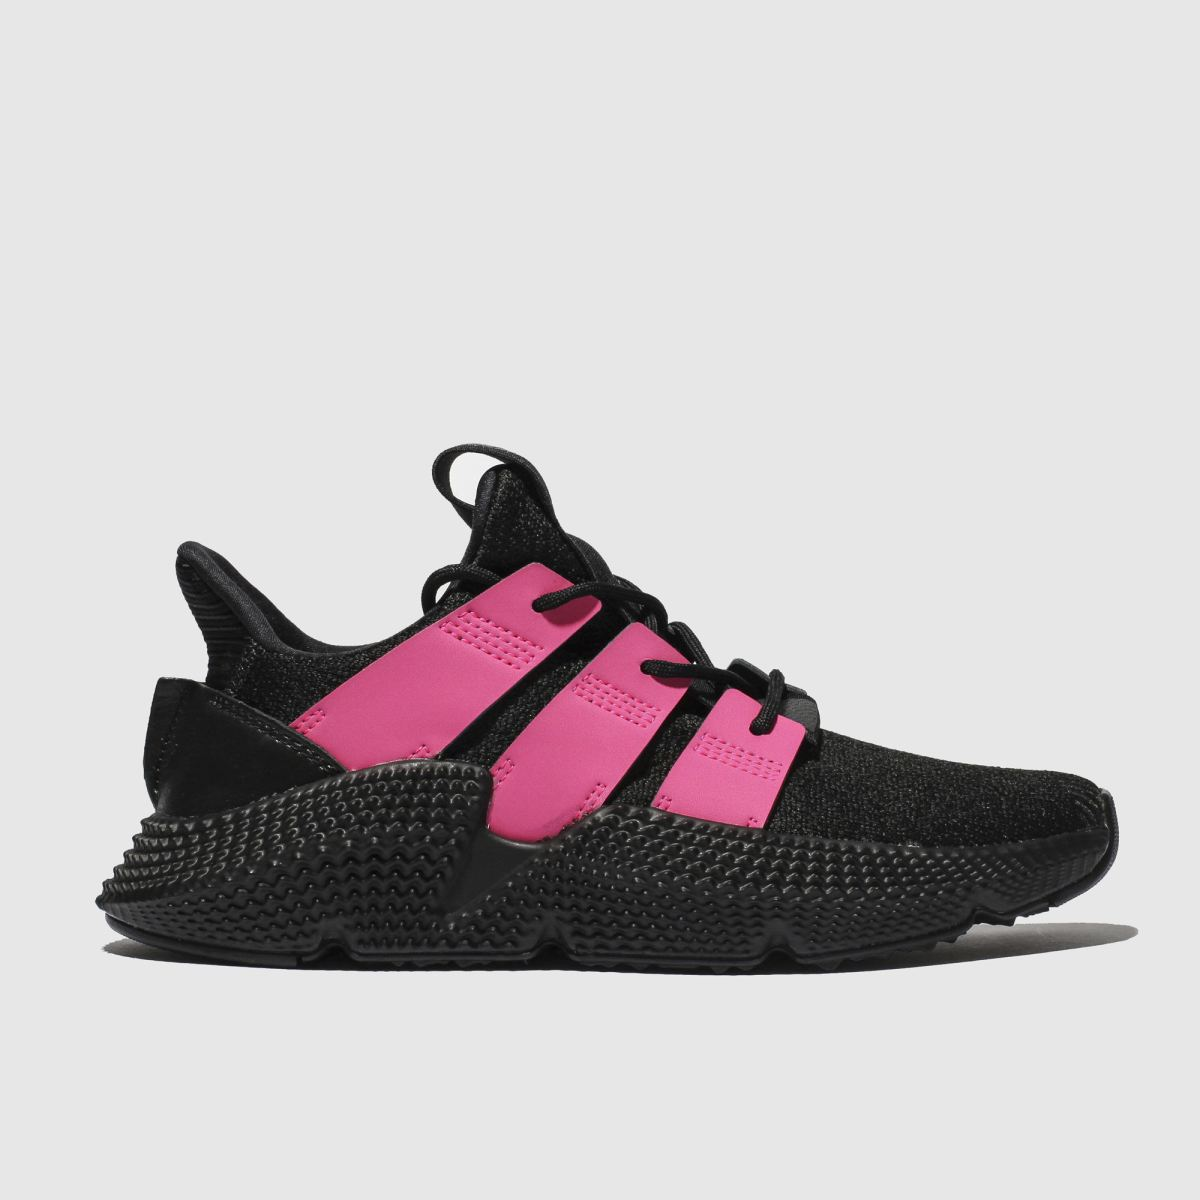 Adidas Black & Pink Prophere Trainers